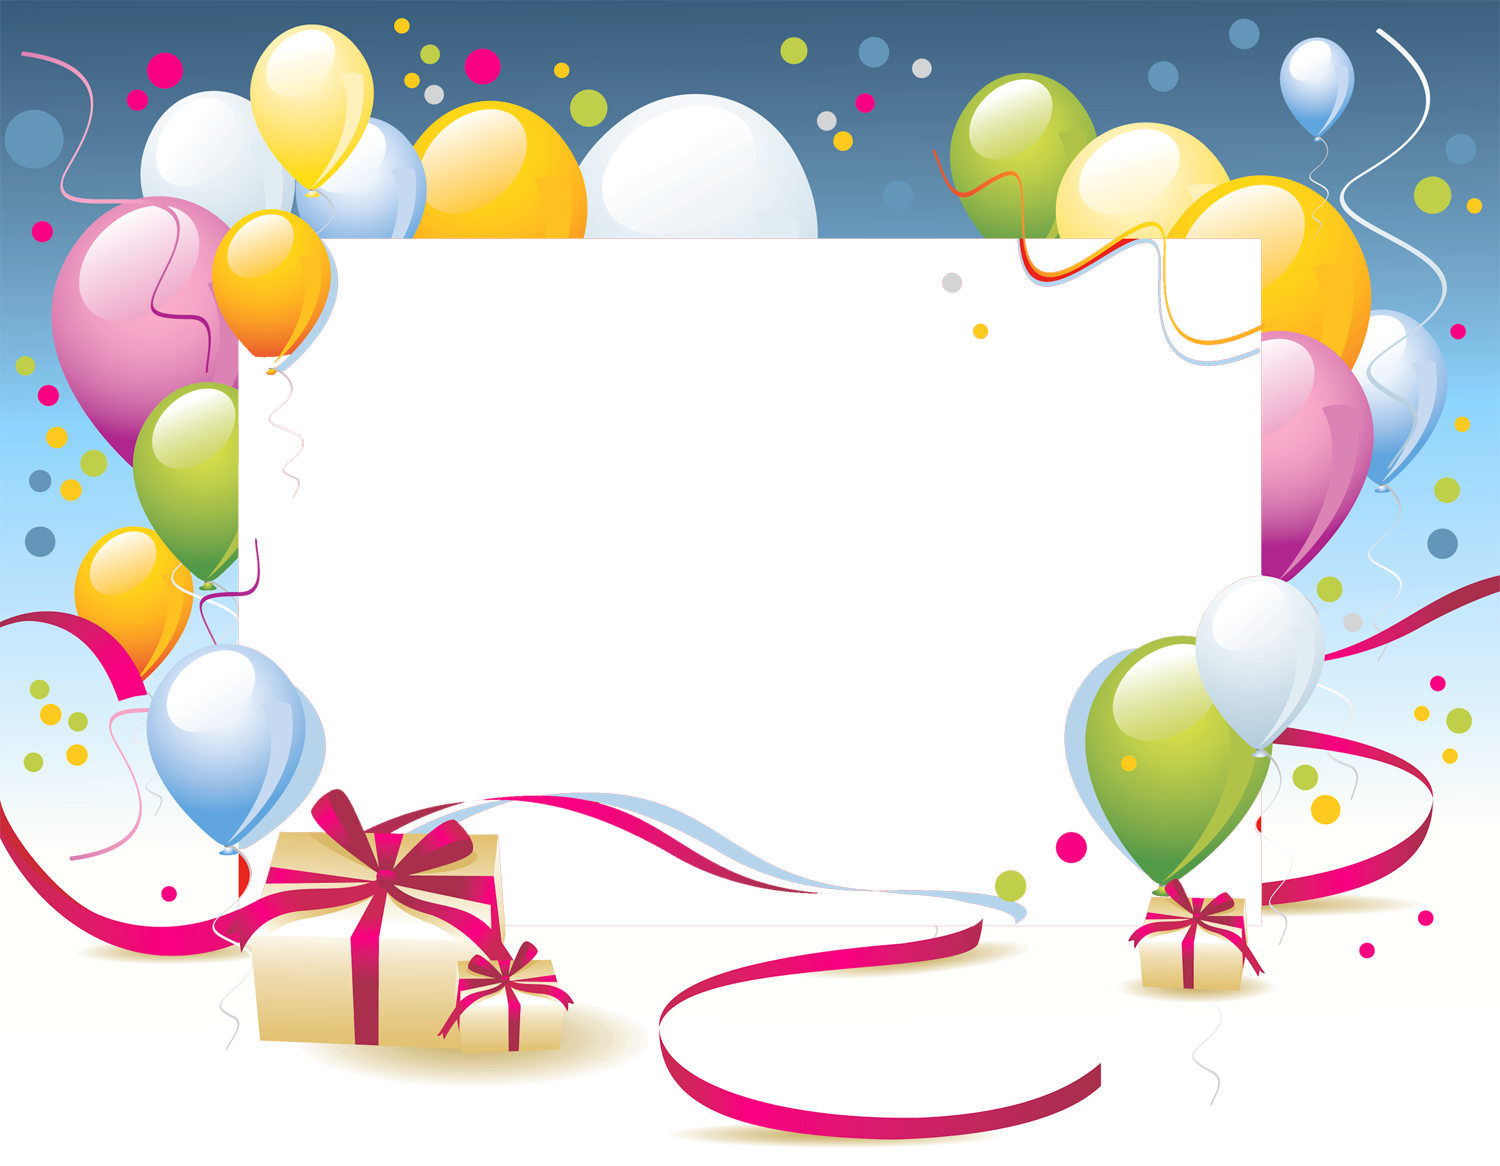 Free Happy Birthday Frame Png, Download Free Clip Art, Free.